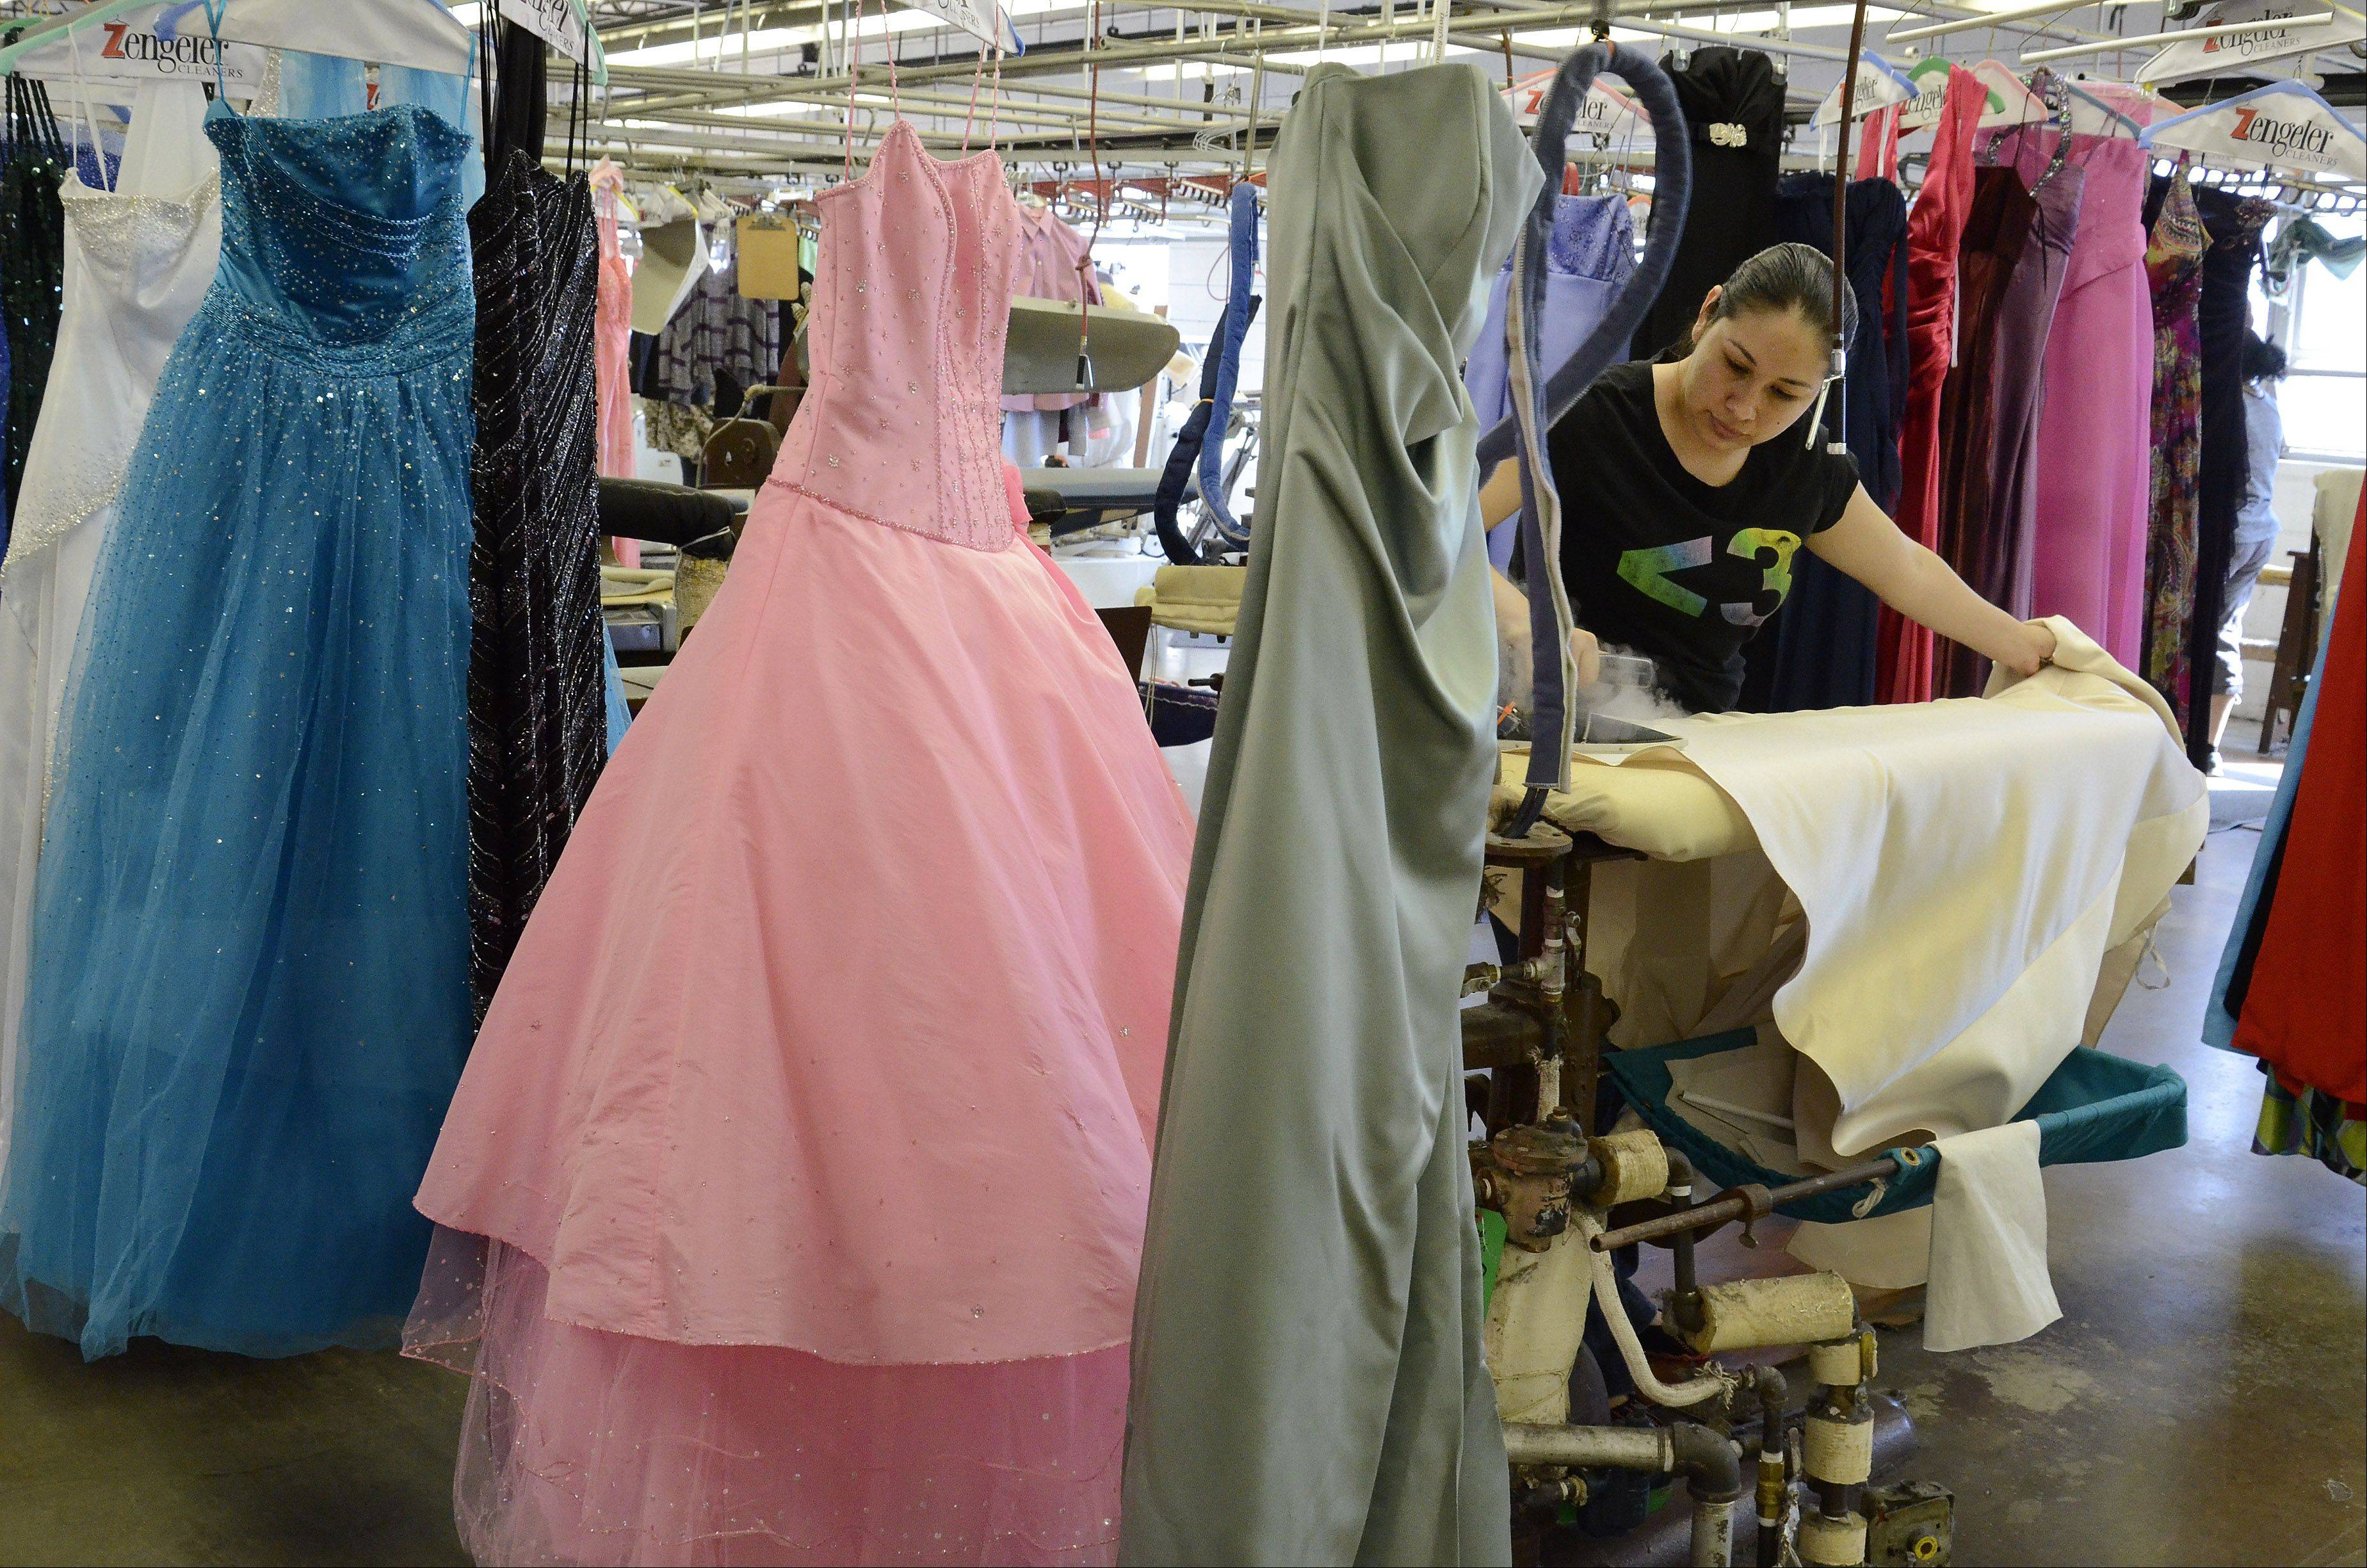 Maria de Jesus of Zengeler Cleaners in Northbrook, presses some of the 3,500 new and used prom dresses donated on behalf of the Glass Slipper Project.